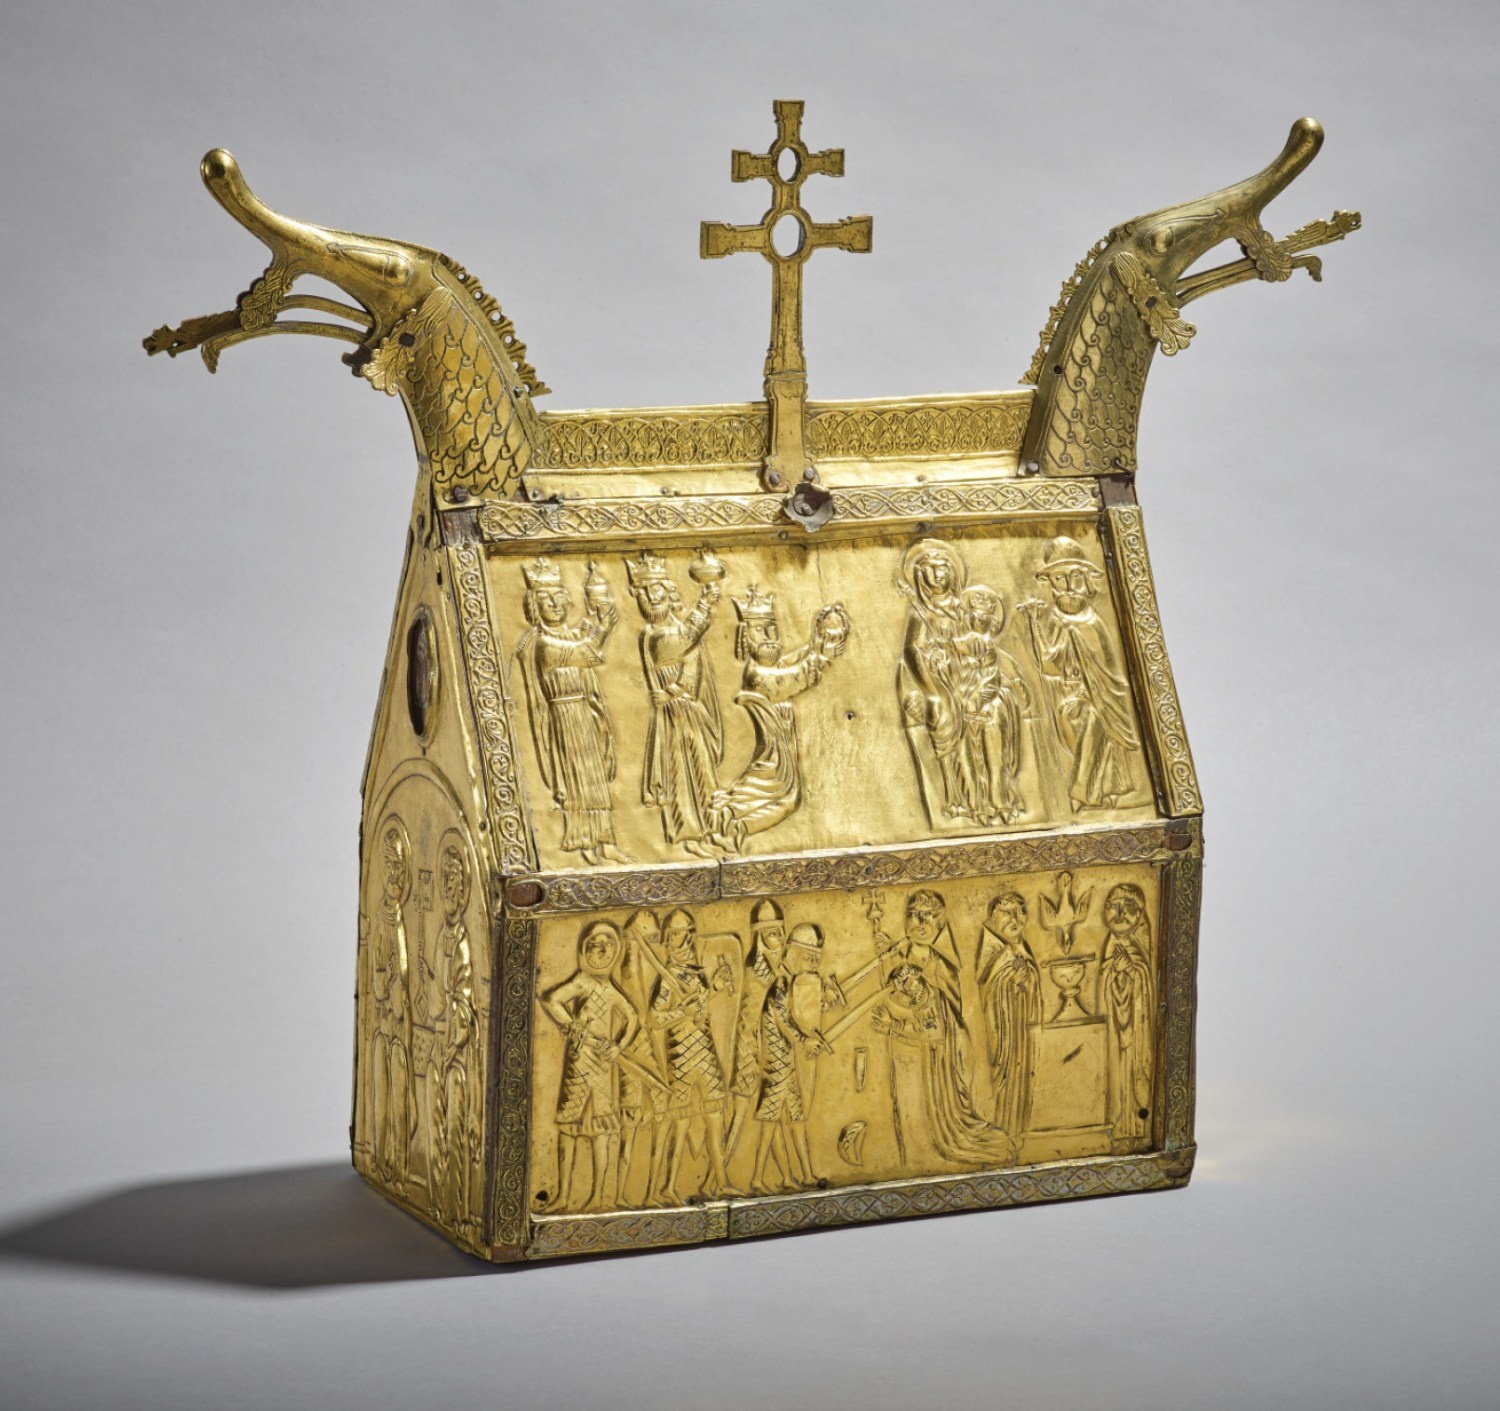 left Becket was venerated all over Christendom, and the reliquaries made to contain his relics often took on national stylistic characteristics, as in the case of the casket probably made in Bergen for the Hedalen Stave Church in Norway, c.1220-1250, with its prominent dragon-head finials.